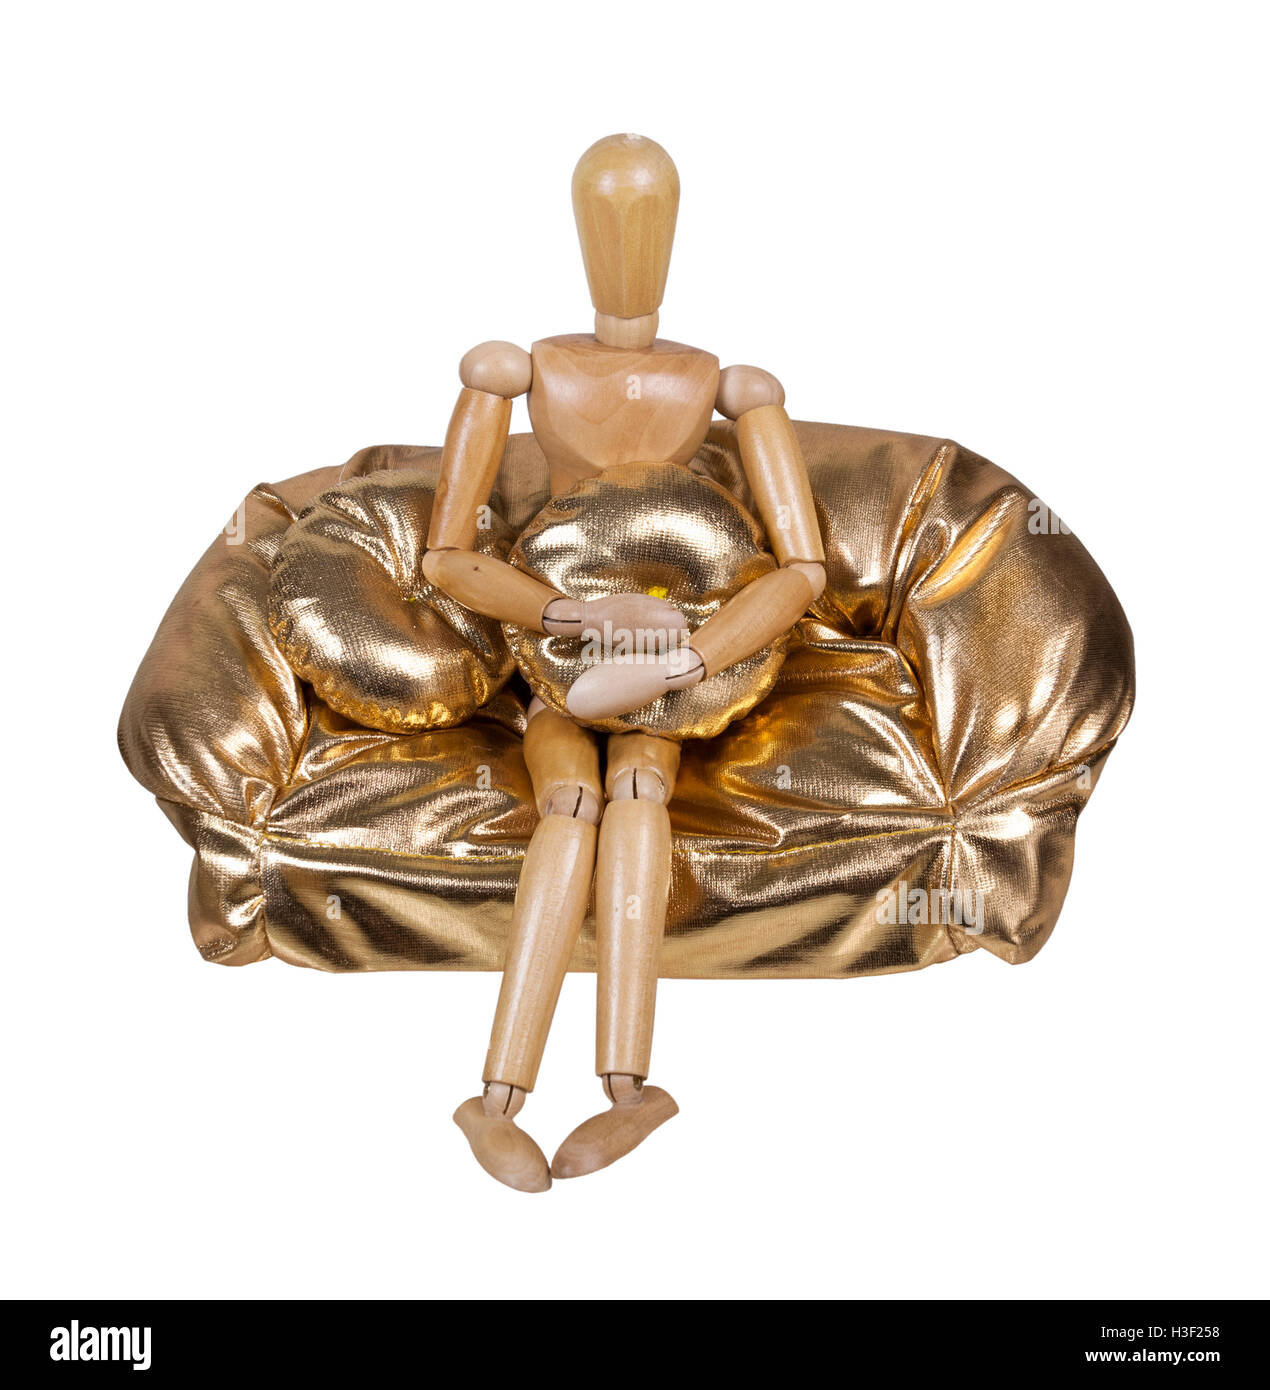 Sitting on a golden plump couch for resting and relaxing - path included - Stock Image